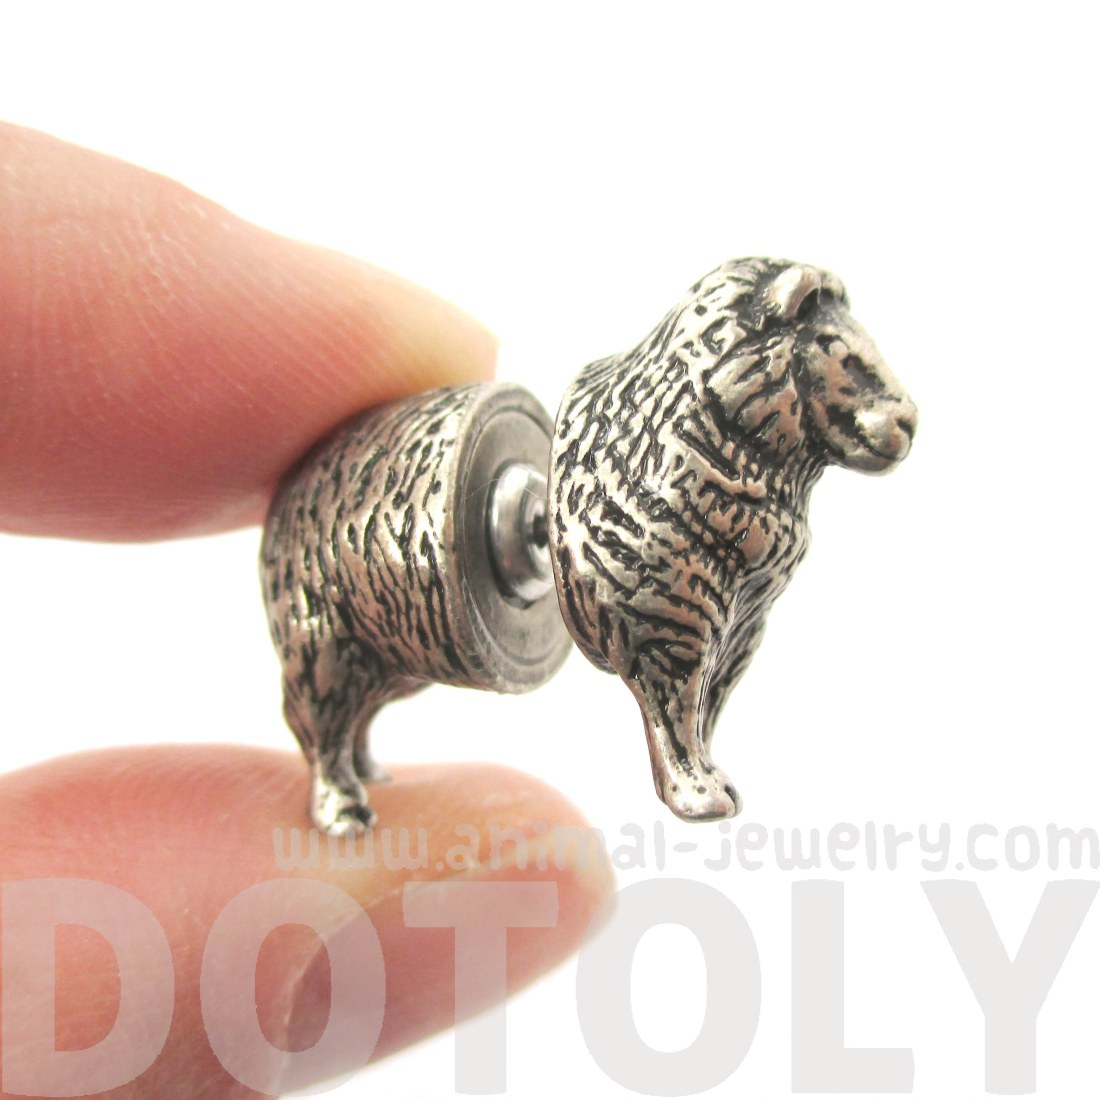 Fake Gauge Wooly Sheep Shaped Front Back Plug Stud Earrings In Silver   Thumbnail 3